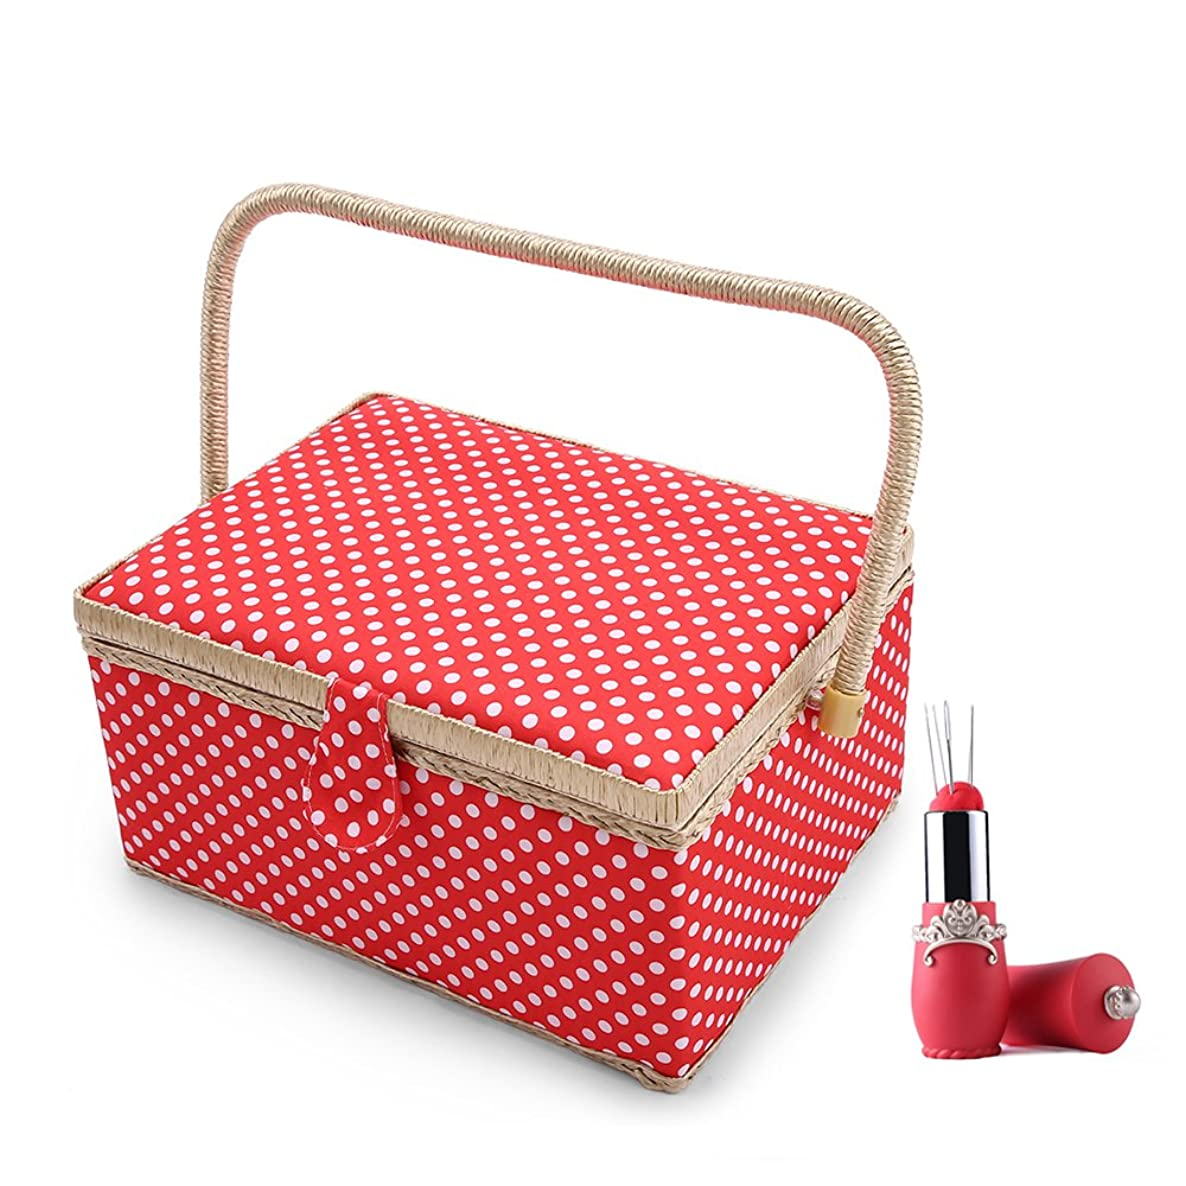 SAXTX Polka Dot Large Sewing Basket Organizer with 100pcs Accessories| Home Essentials Sewing Kit Box for Quilting Embroidery | 12 1/5 x 9 x 6 1/3 inches|Red